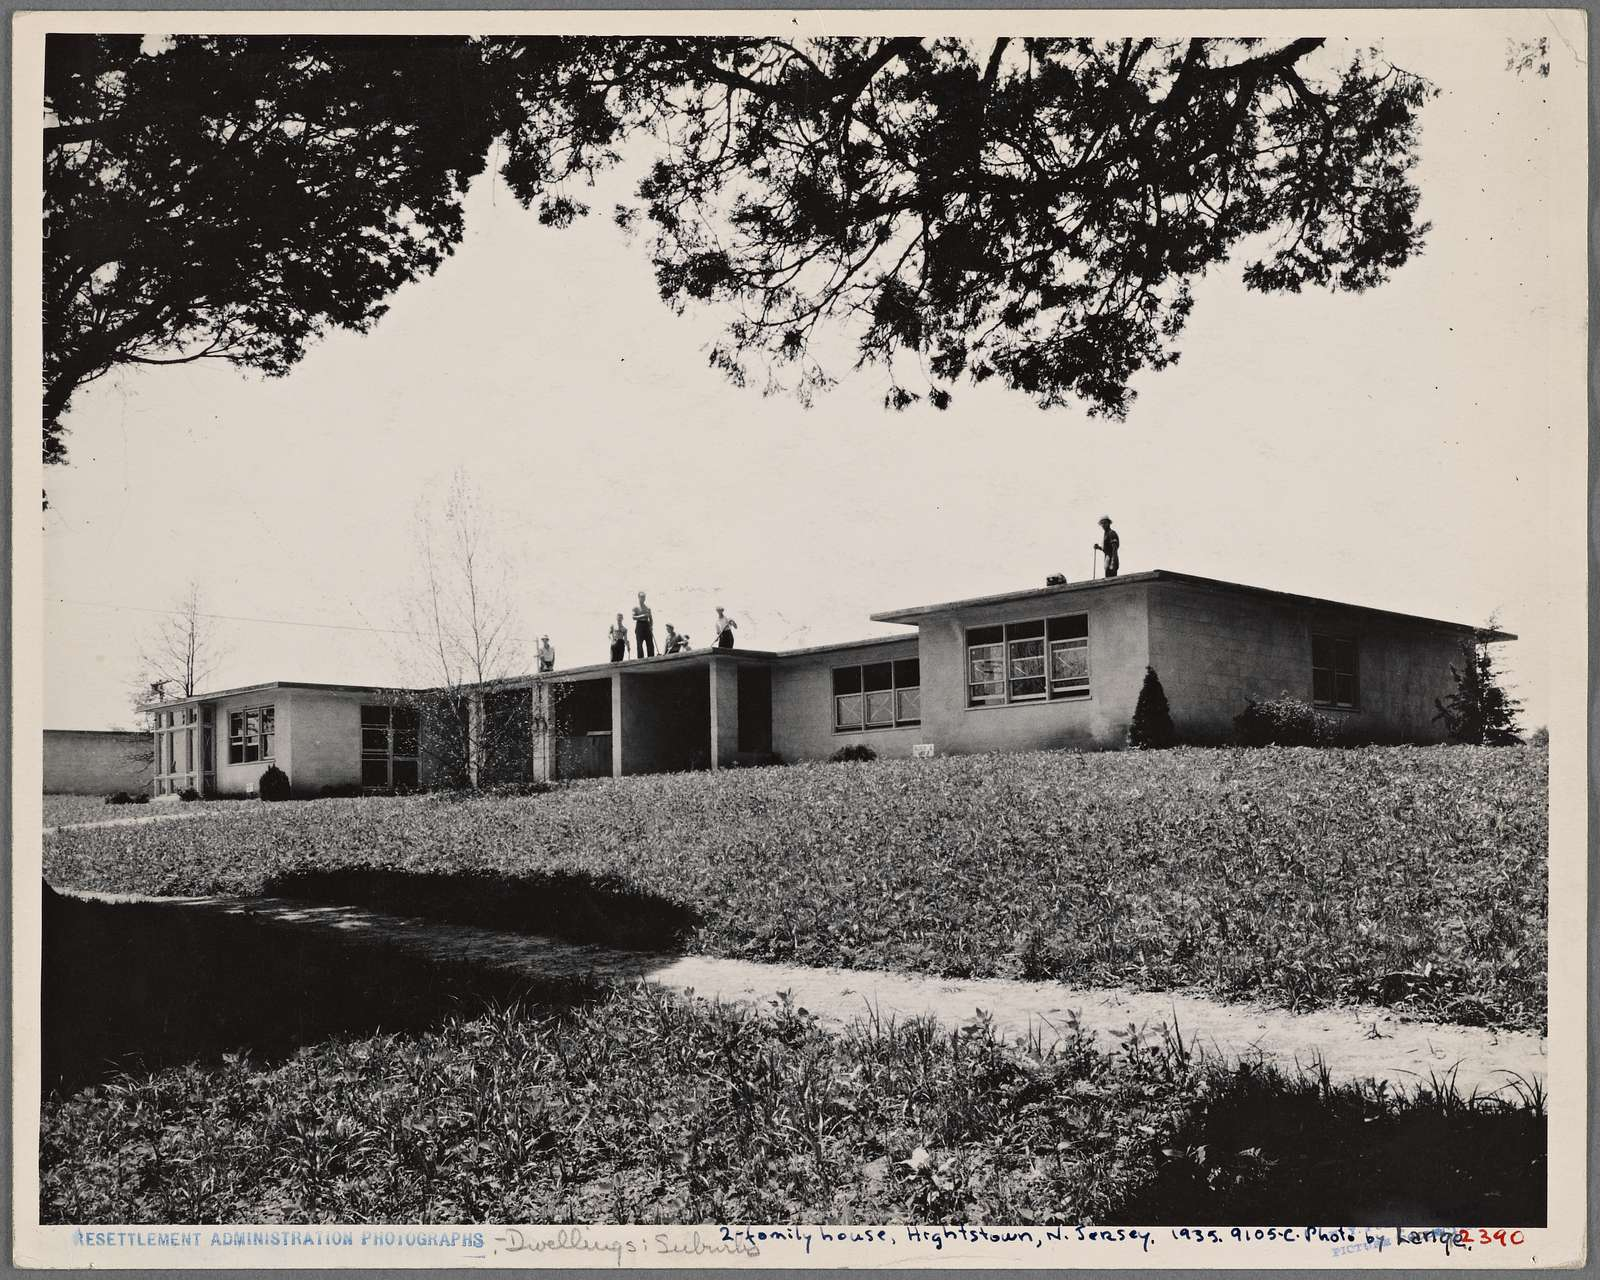 Hightstown, New Jersey. Type house. 2 family. Incomplete. Ready for occupancy July, 1936